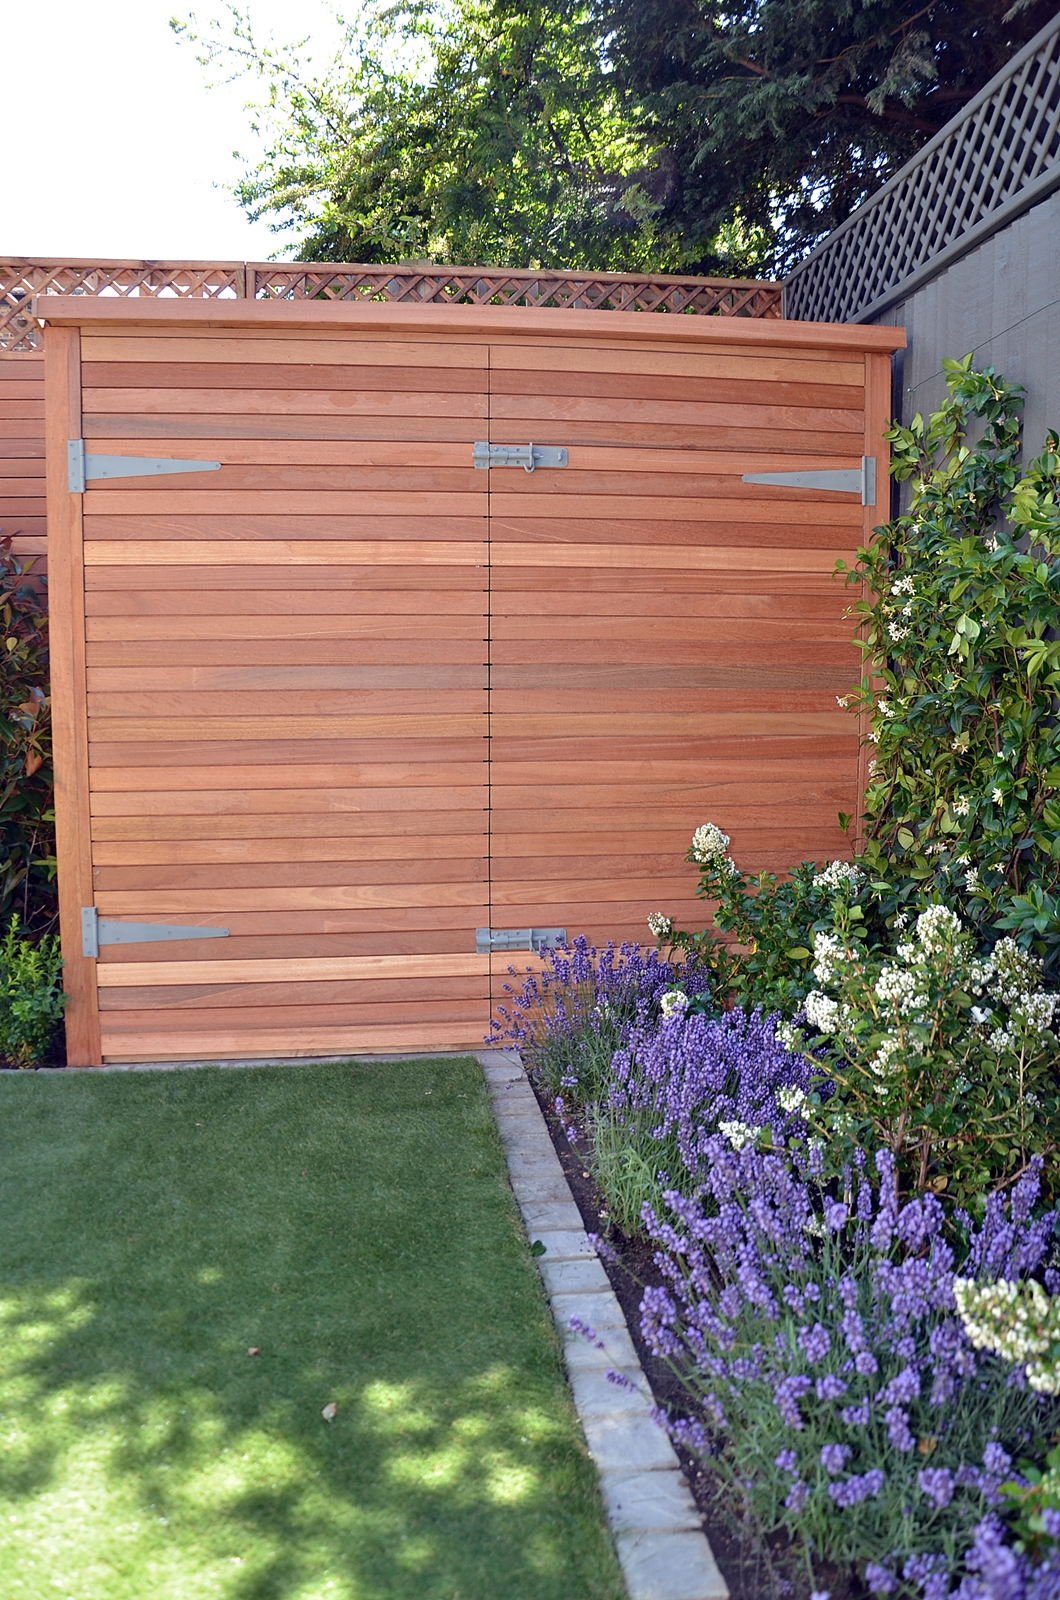 bespoke hardwood bike garden storage shed london